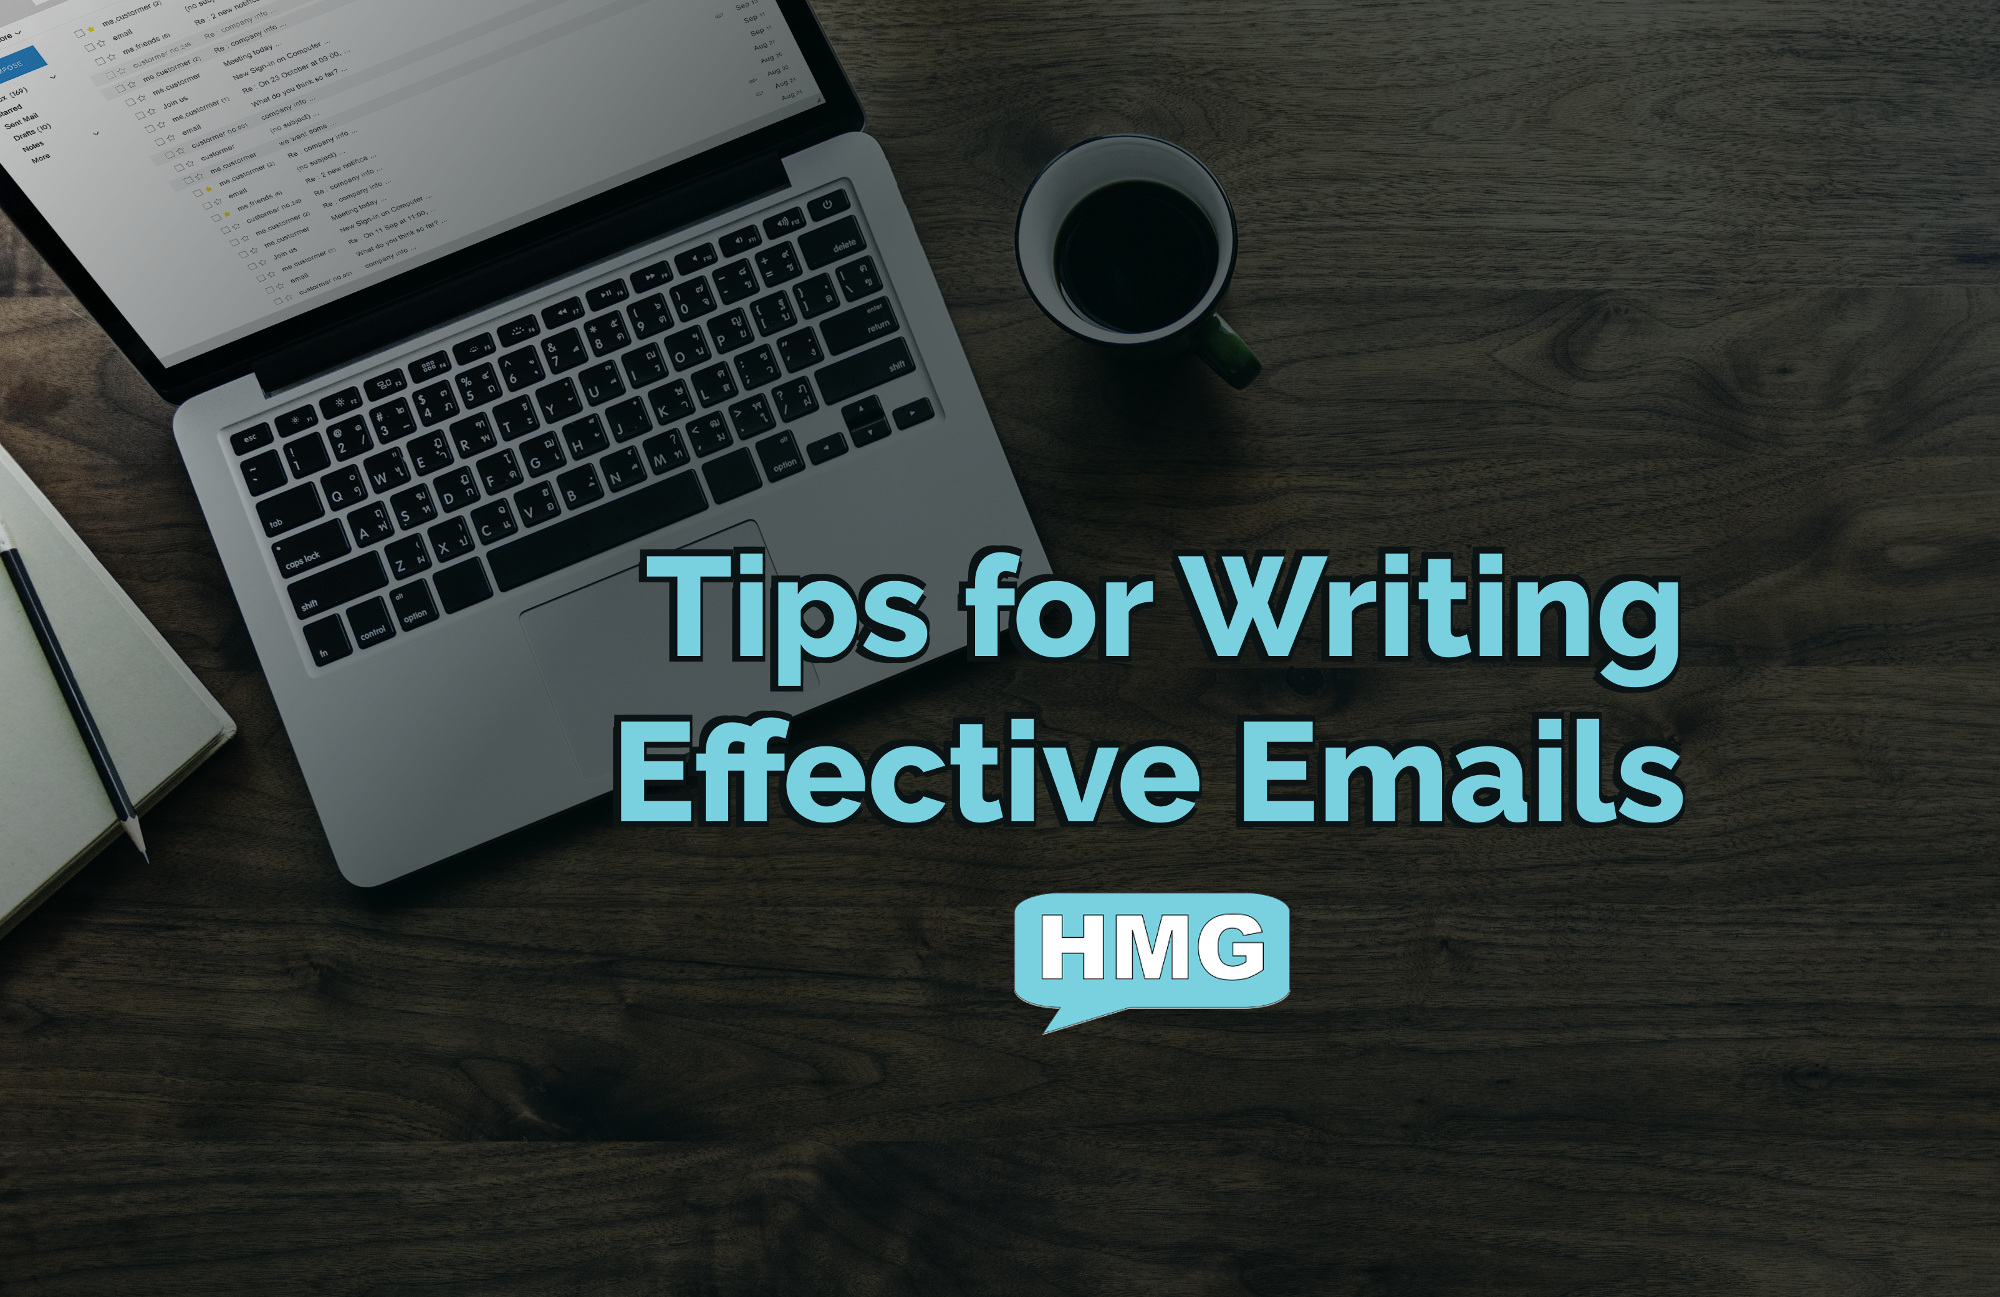 The text 'Tips for Writing Effective Emails' over an image of a laptop and coffee on a desk.